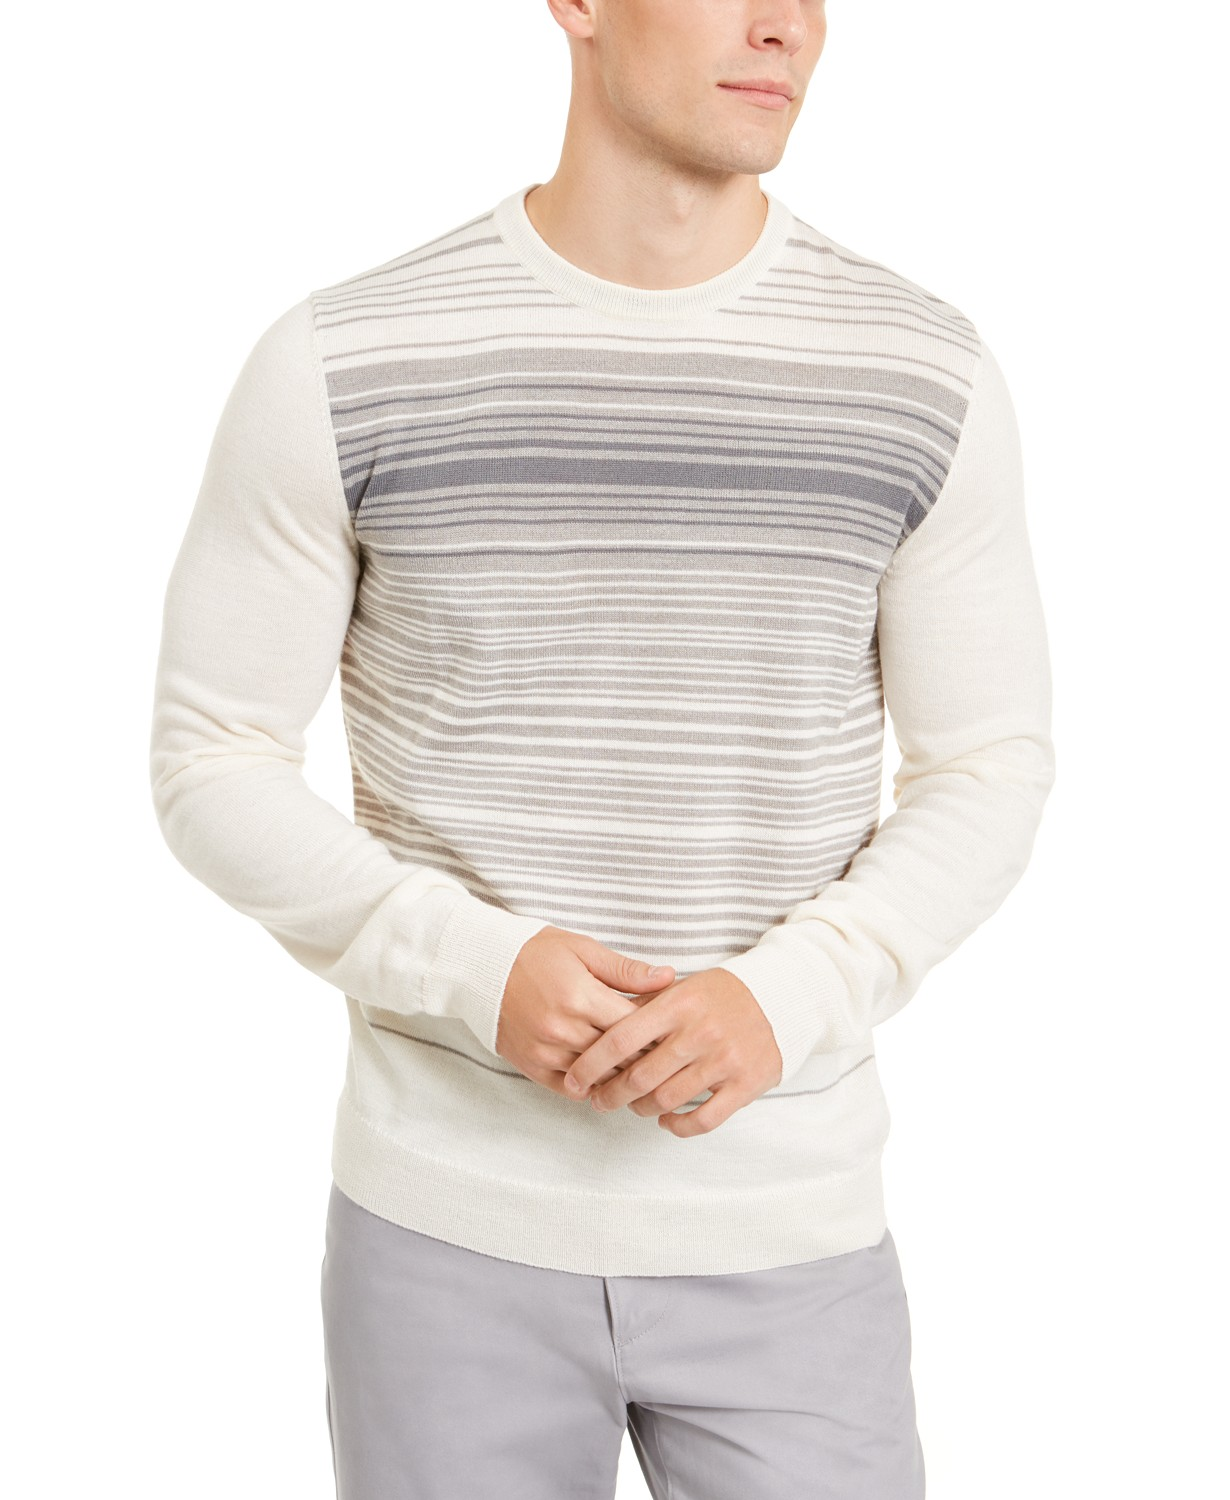 Alfani Mens Merino Blend Stripe Crewneck Sweater